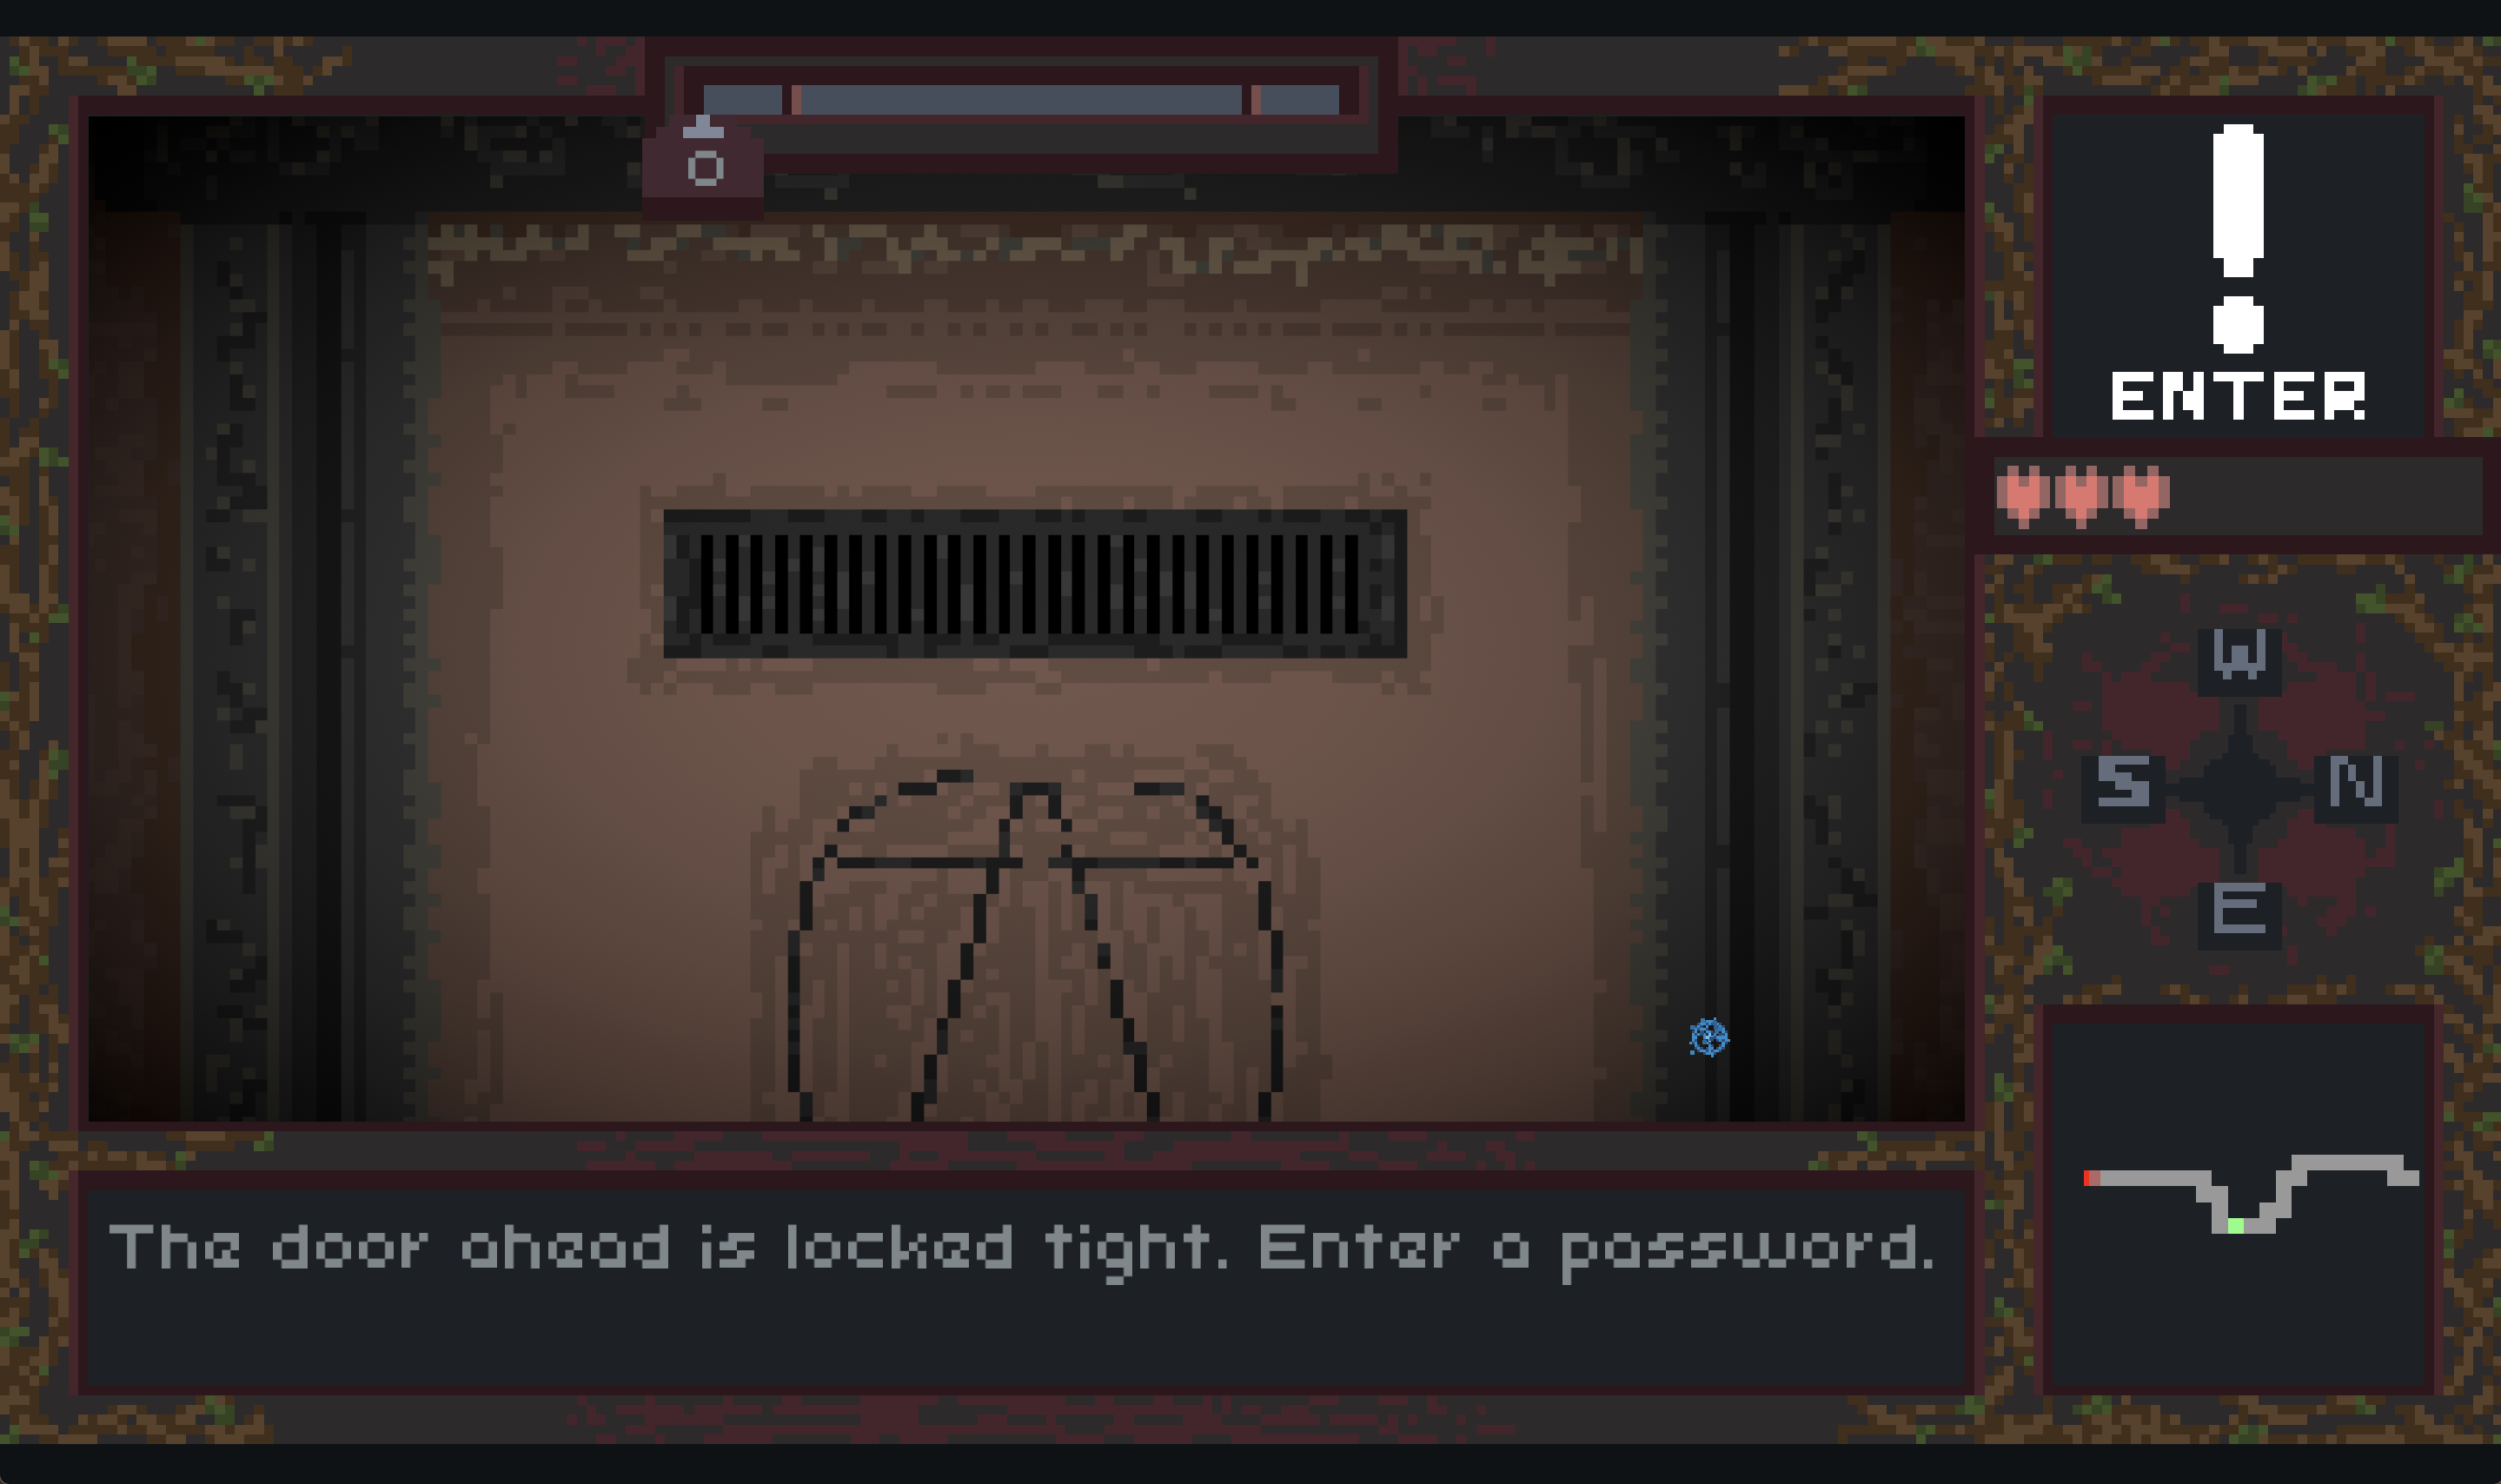 At the door of the title. Enter a password to proceed.